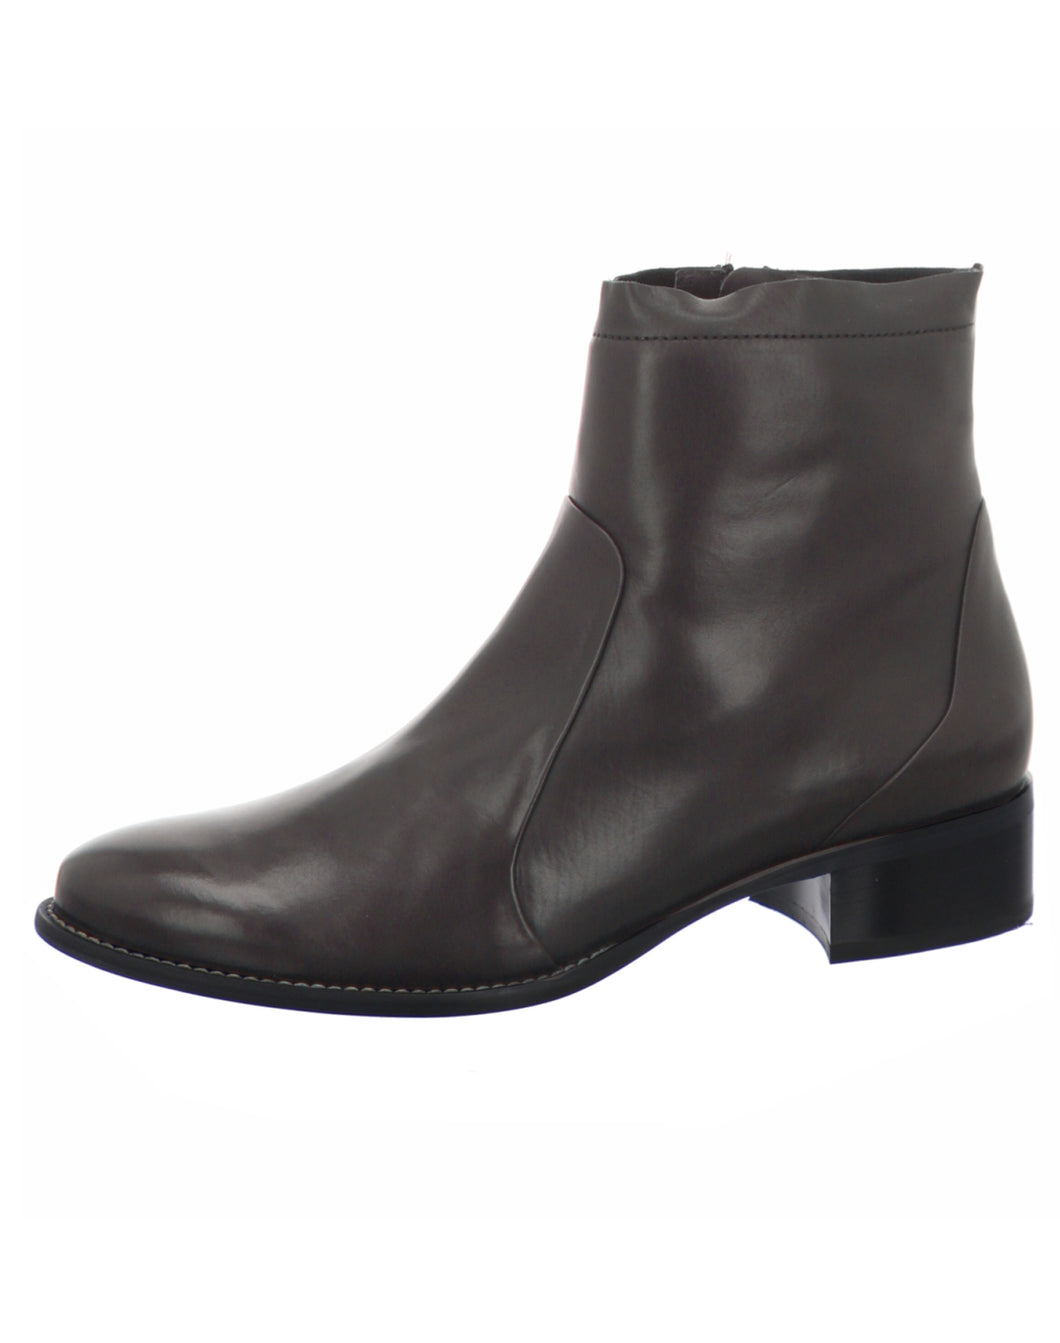 PAUL GREEN 8063 ZIP ANKLE BOOT CHOCOLATE